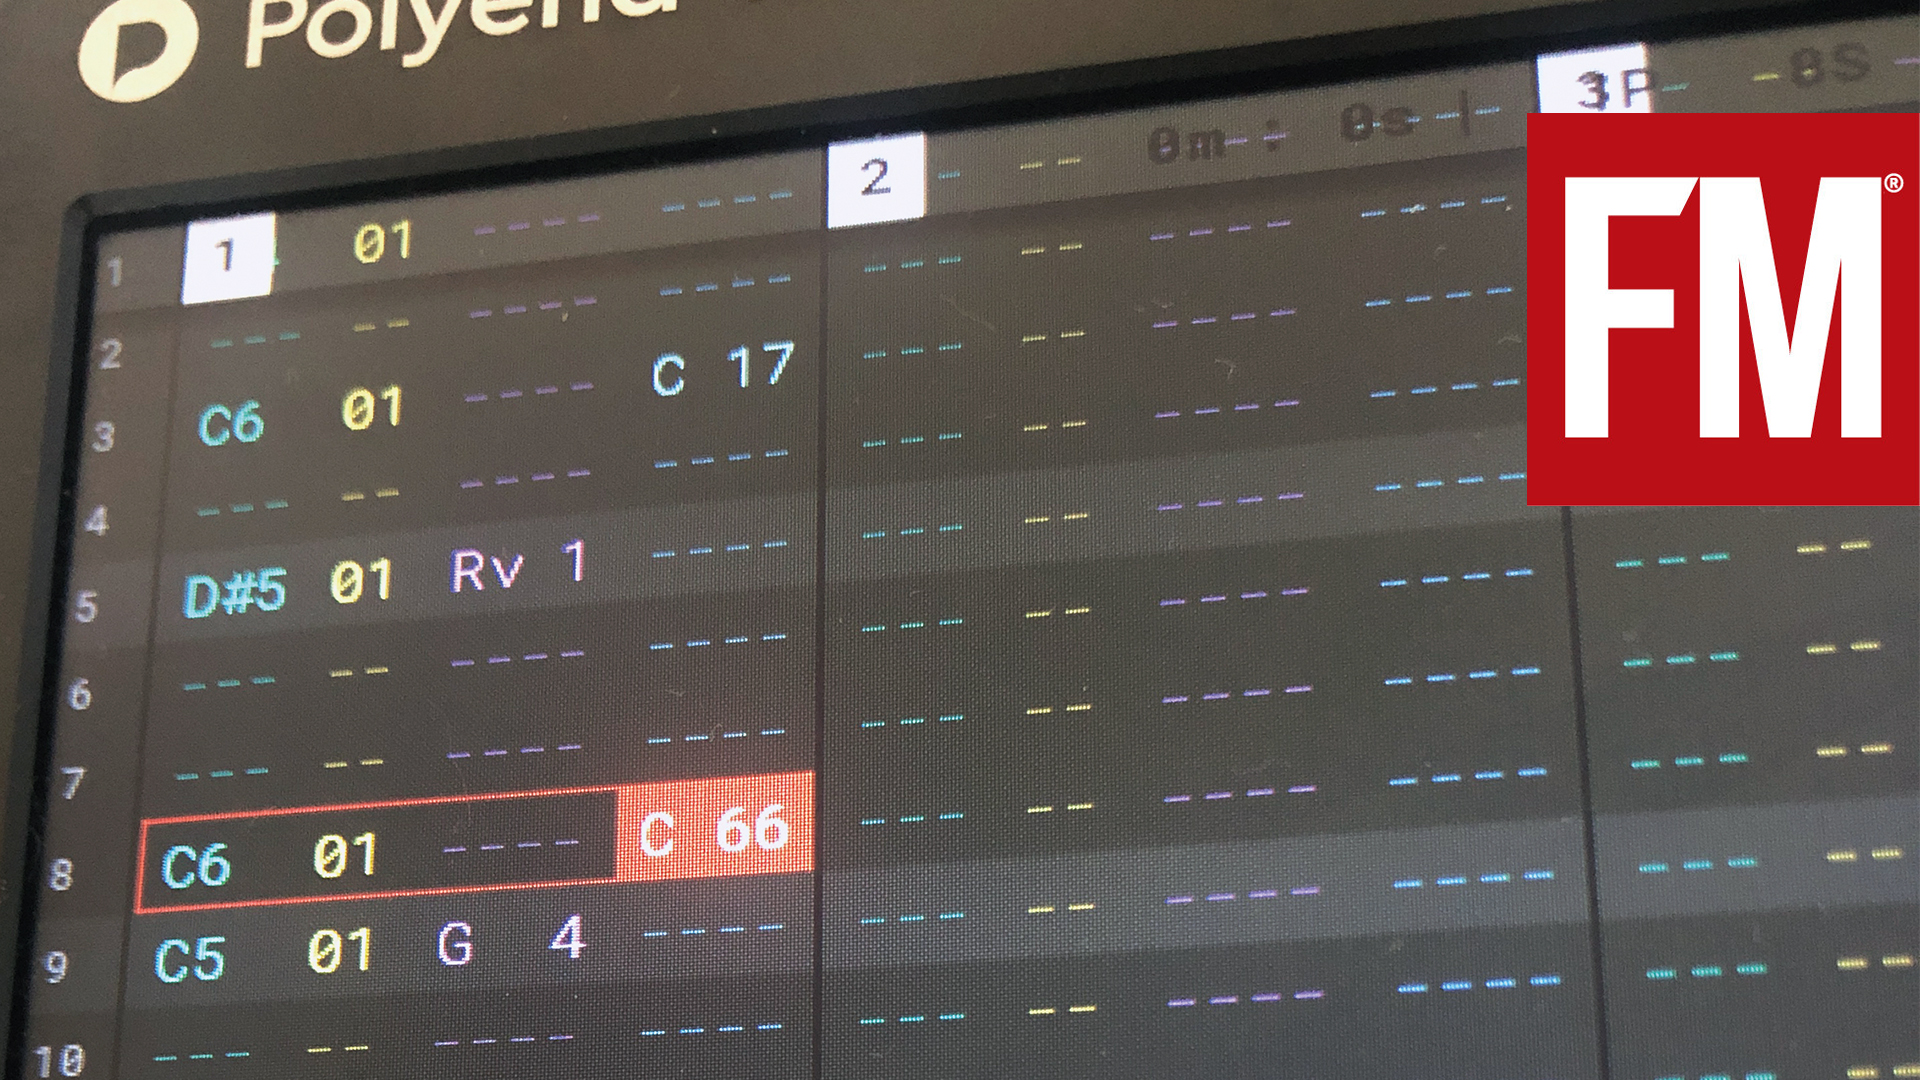 Sequencing basics with Polyend Tracker